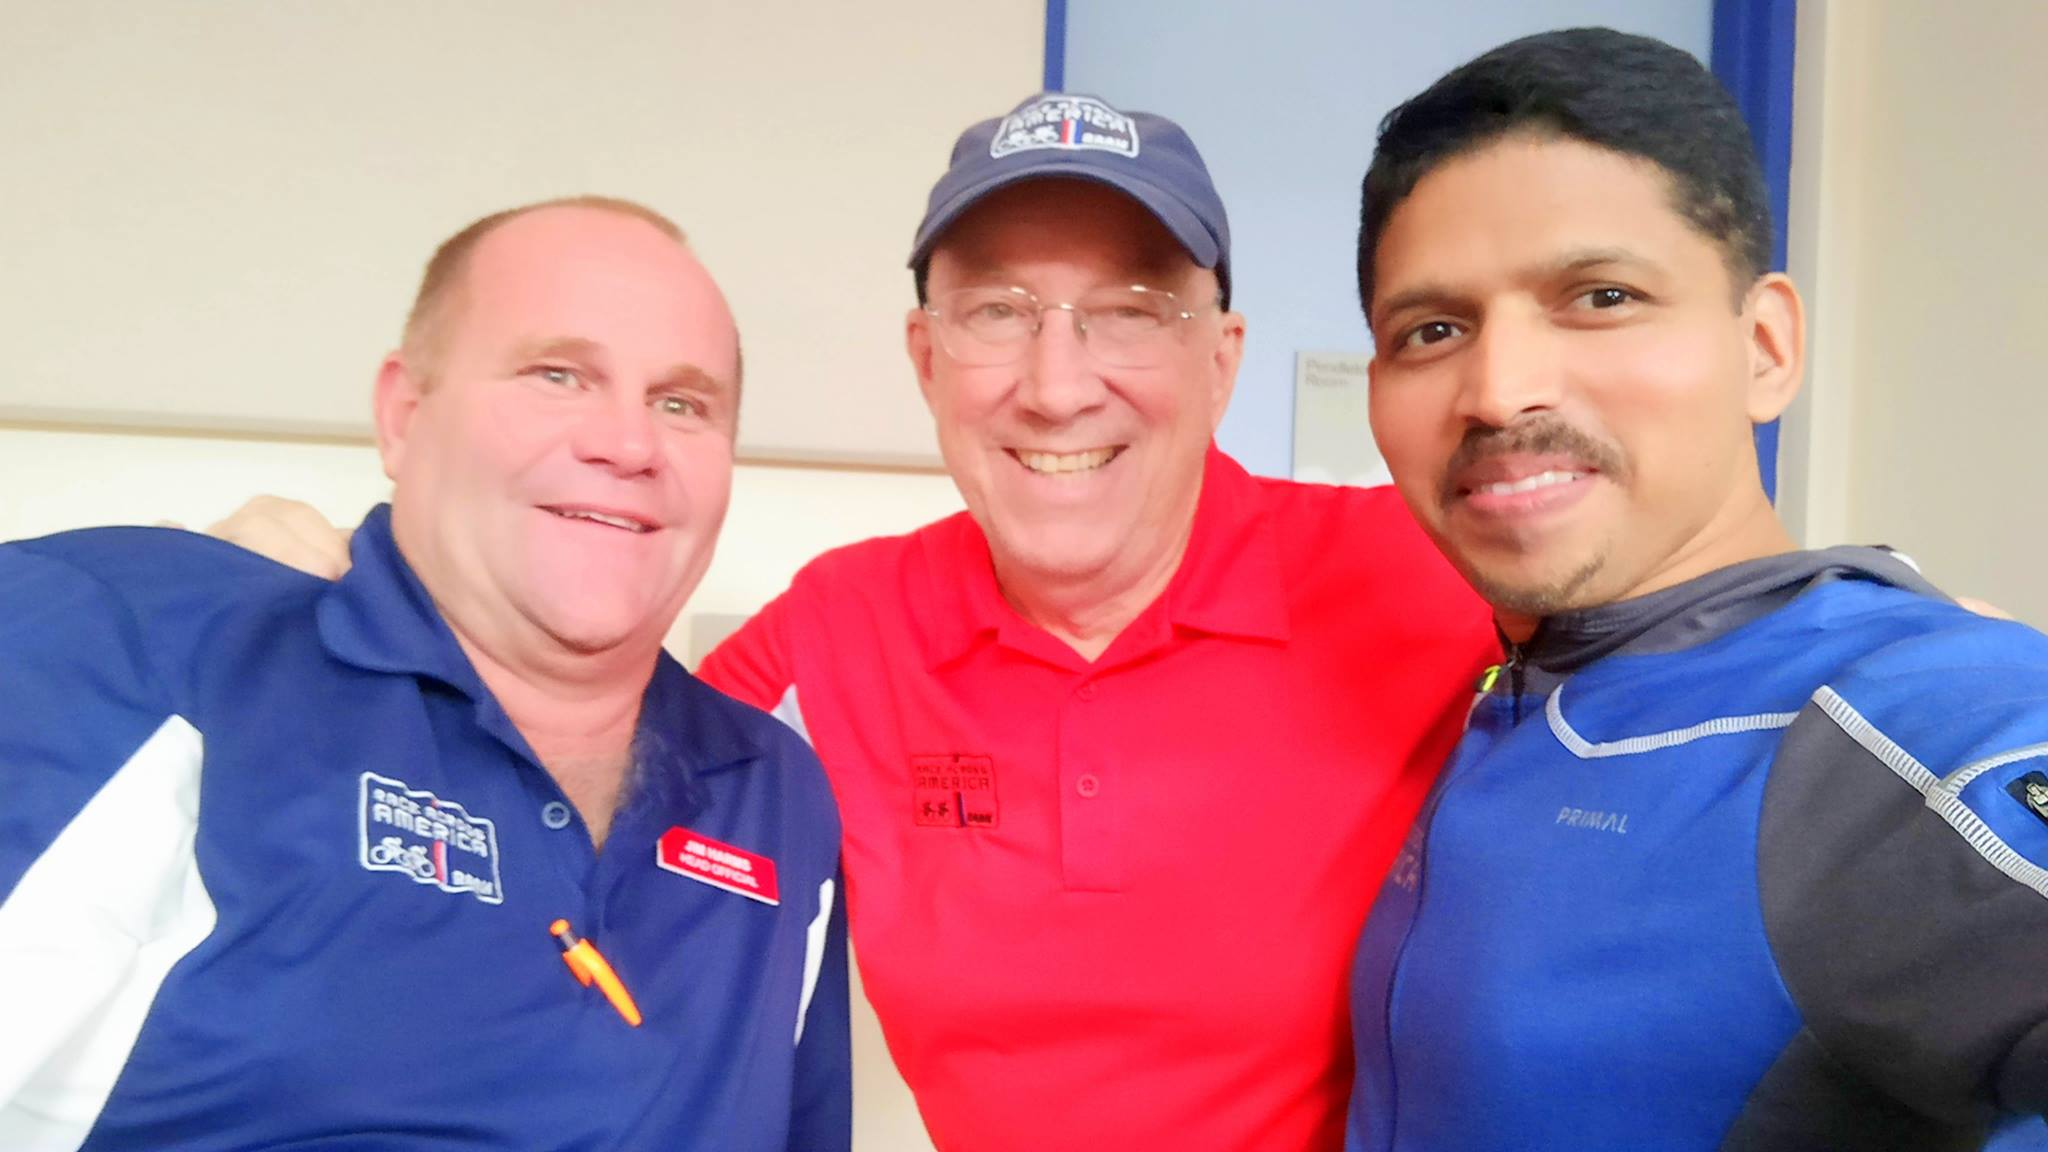 Biju Kunnappada with the President of Race Across America Fred Boethling and Rick at 2017 RAAM as Crew Cheif for the team from India - Ocean Side, California